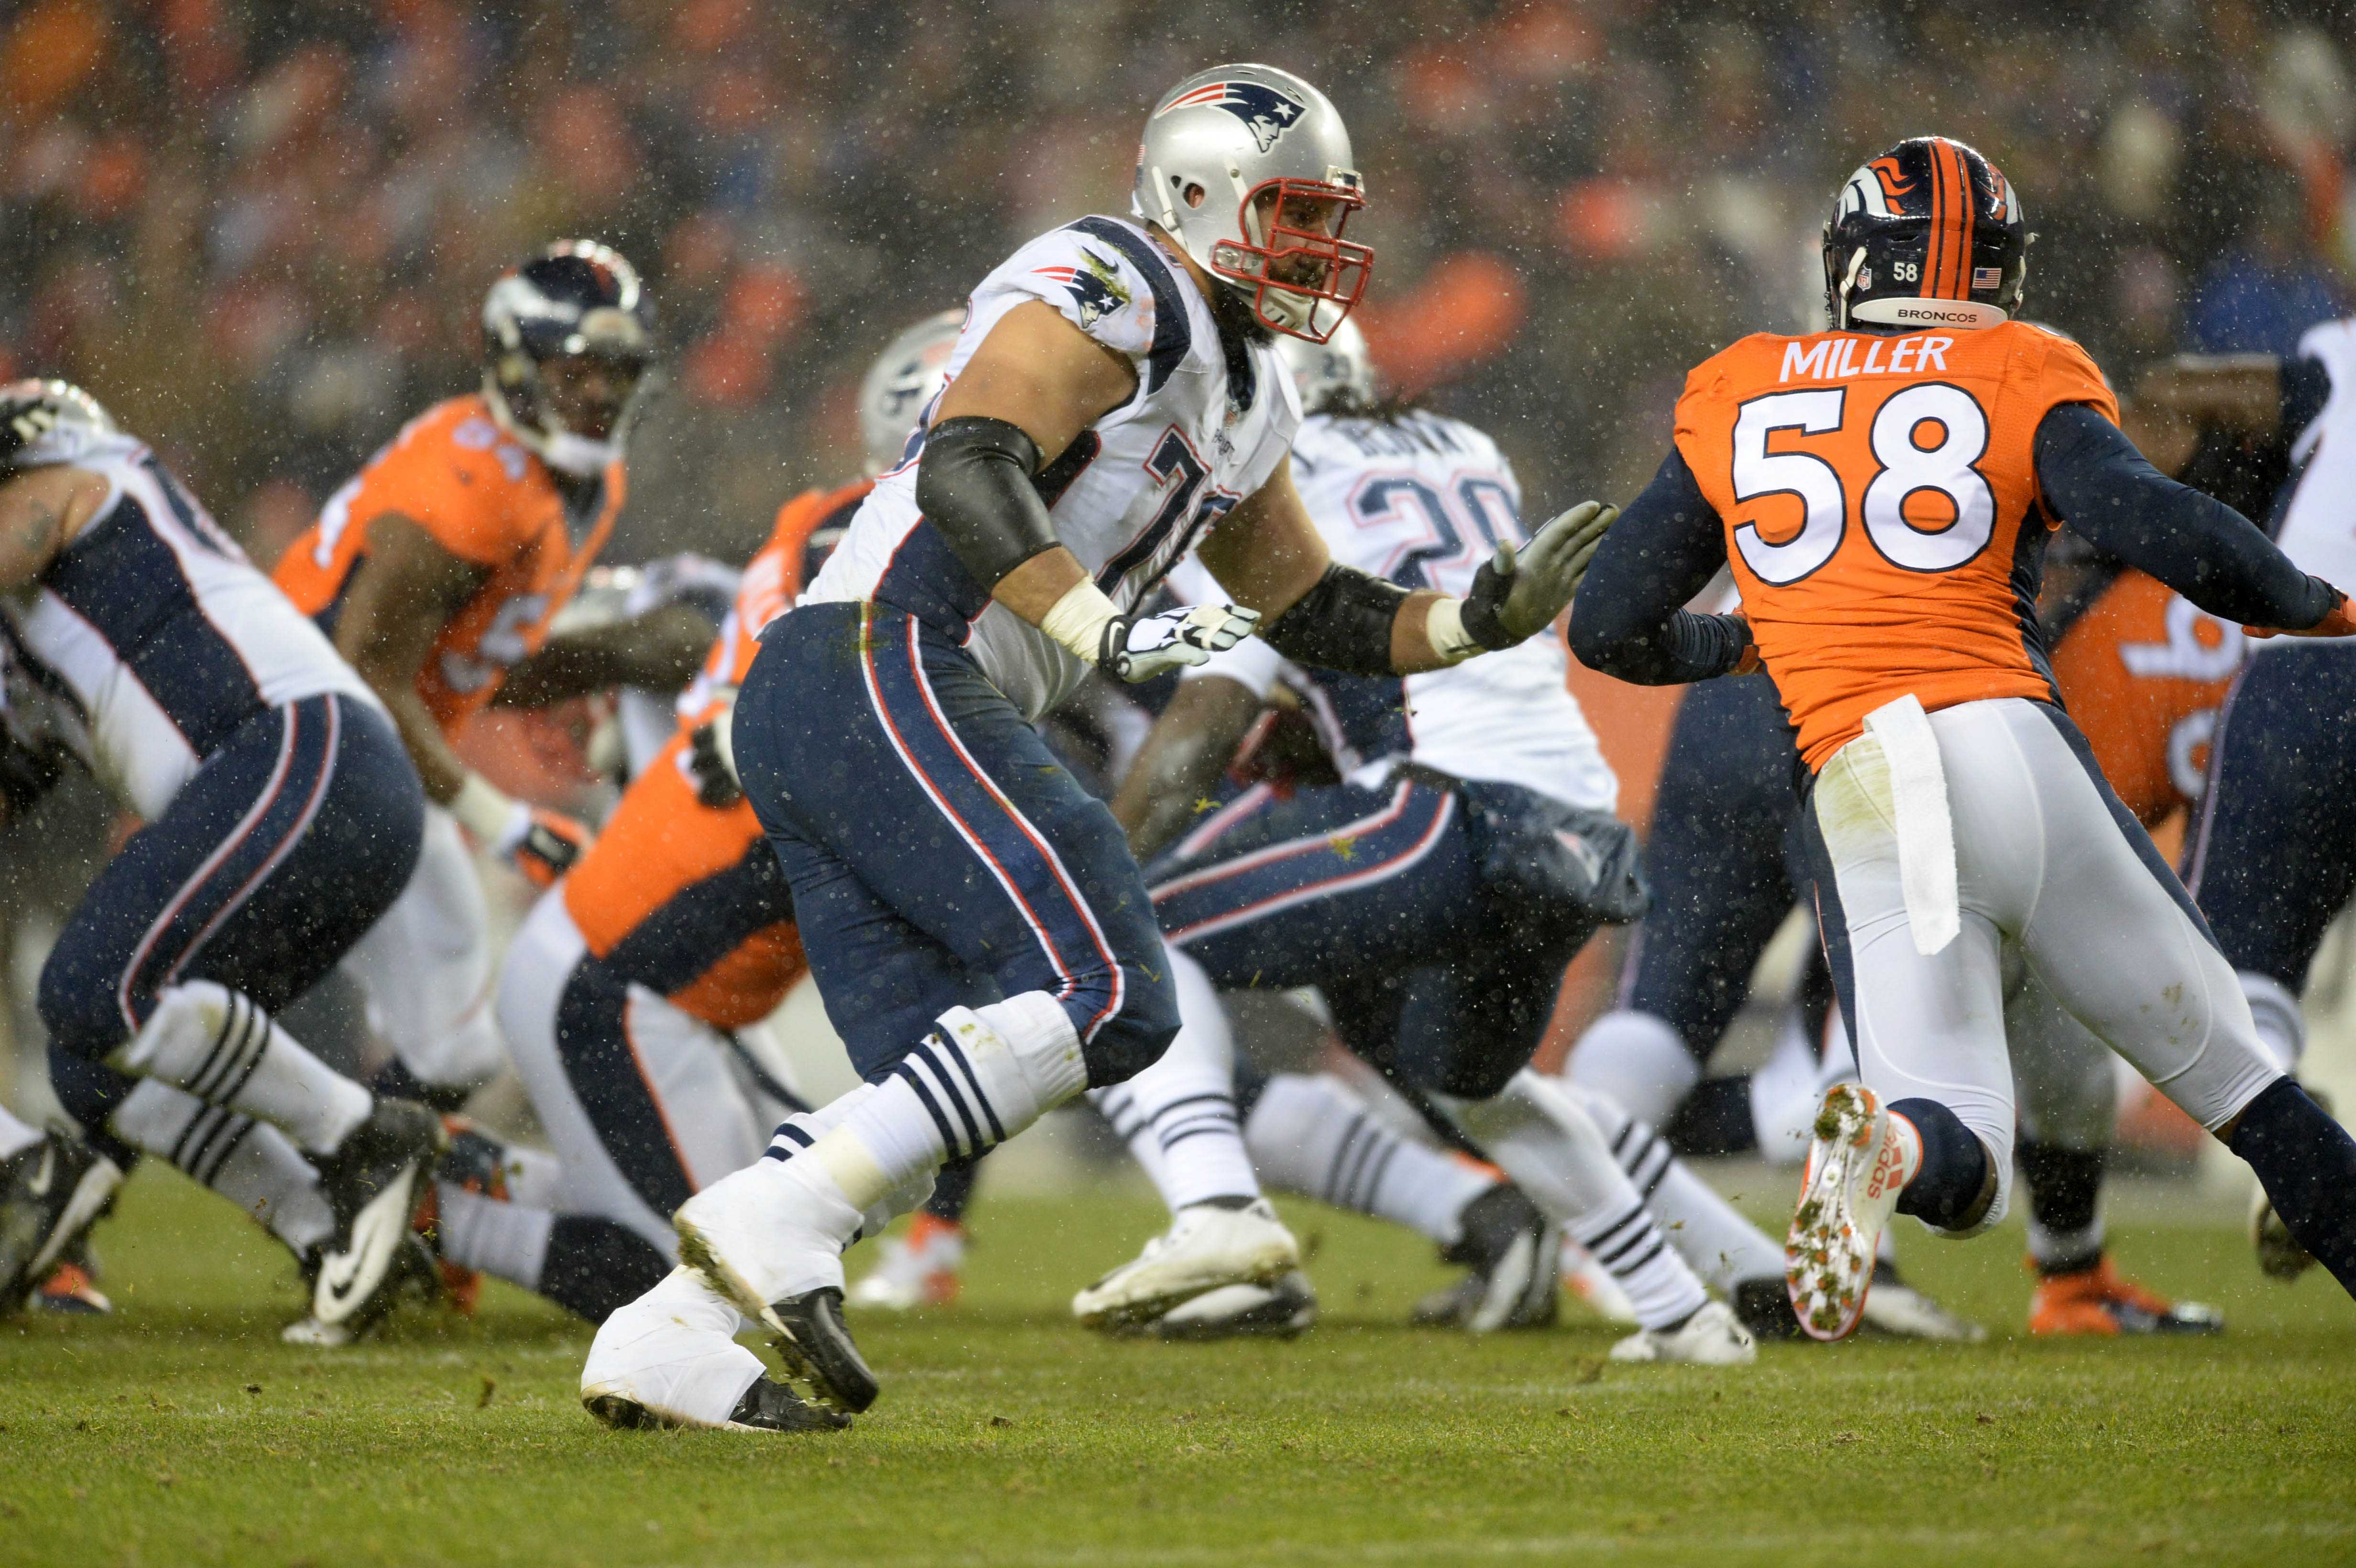 8973710-nfl-new-england-patriots-at-denver-broncos